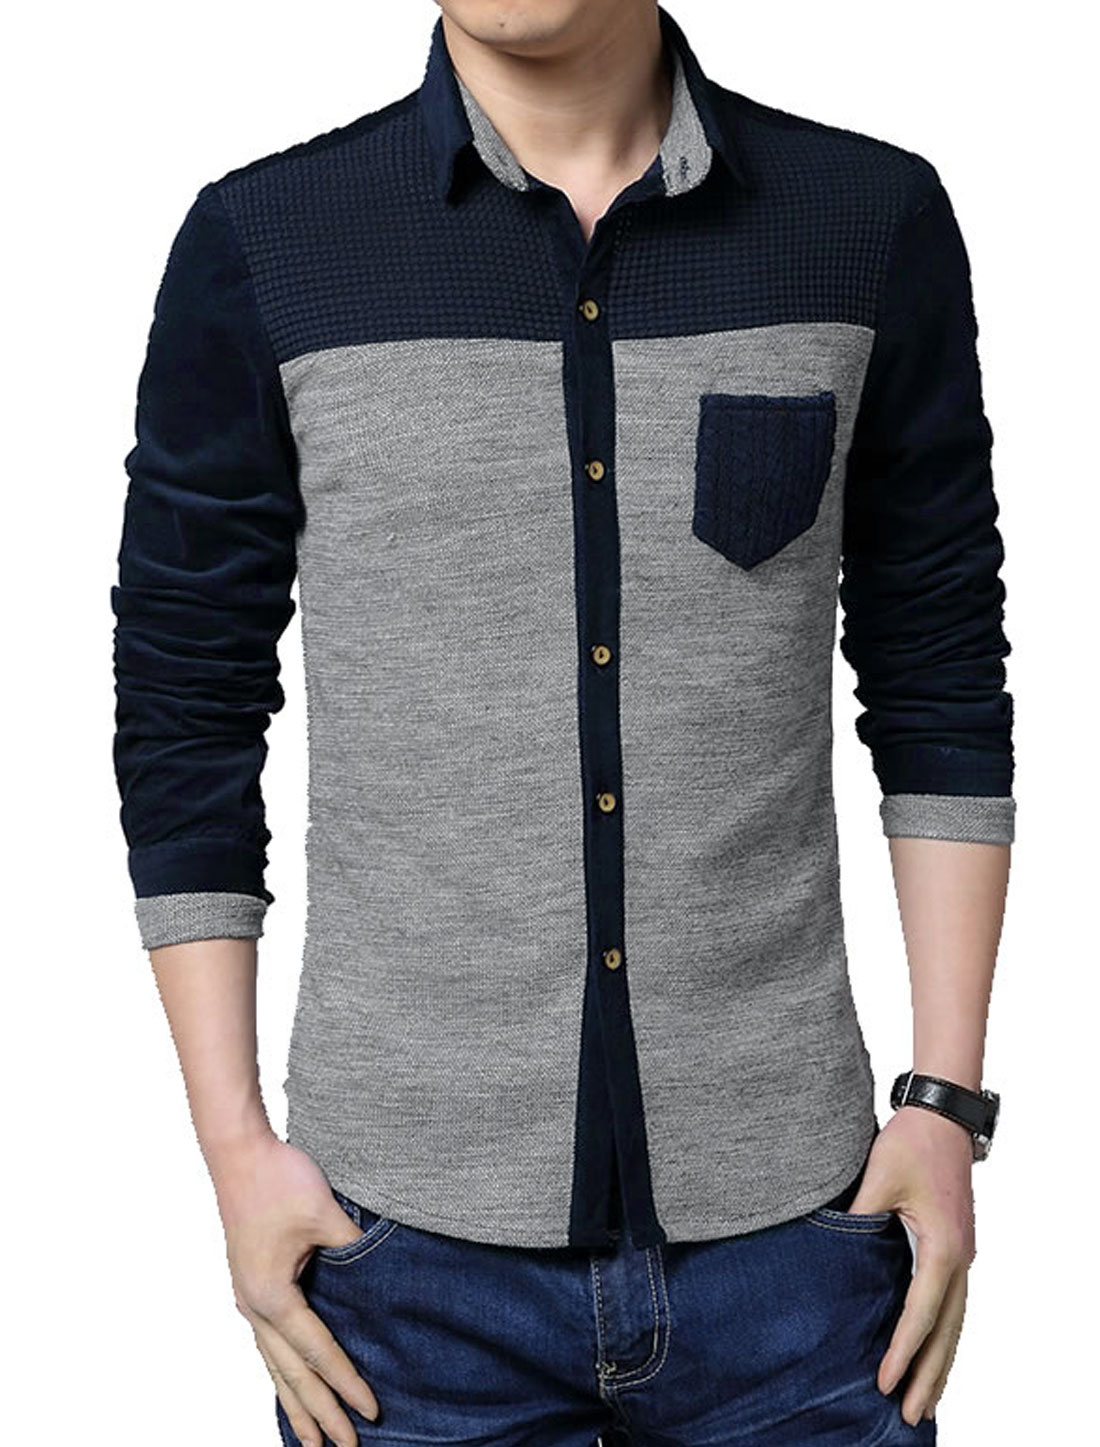 Men New Style Contrast Color Long Sleeve Knit Shirt Light Gray L